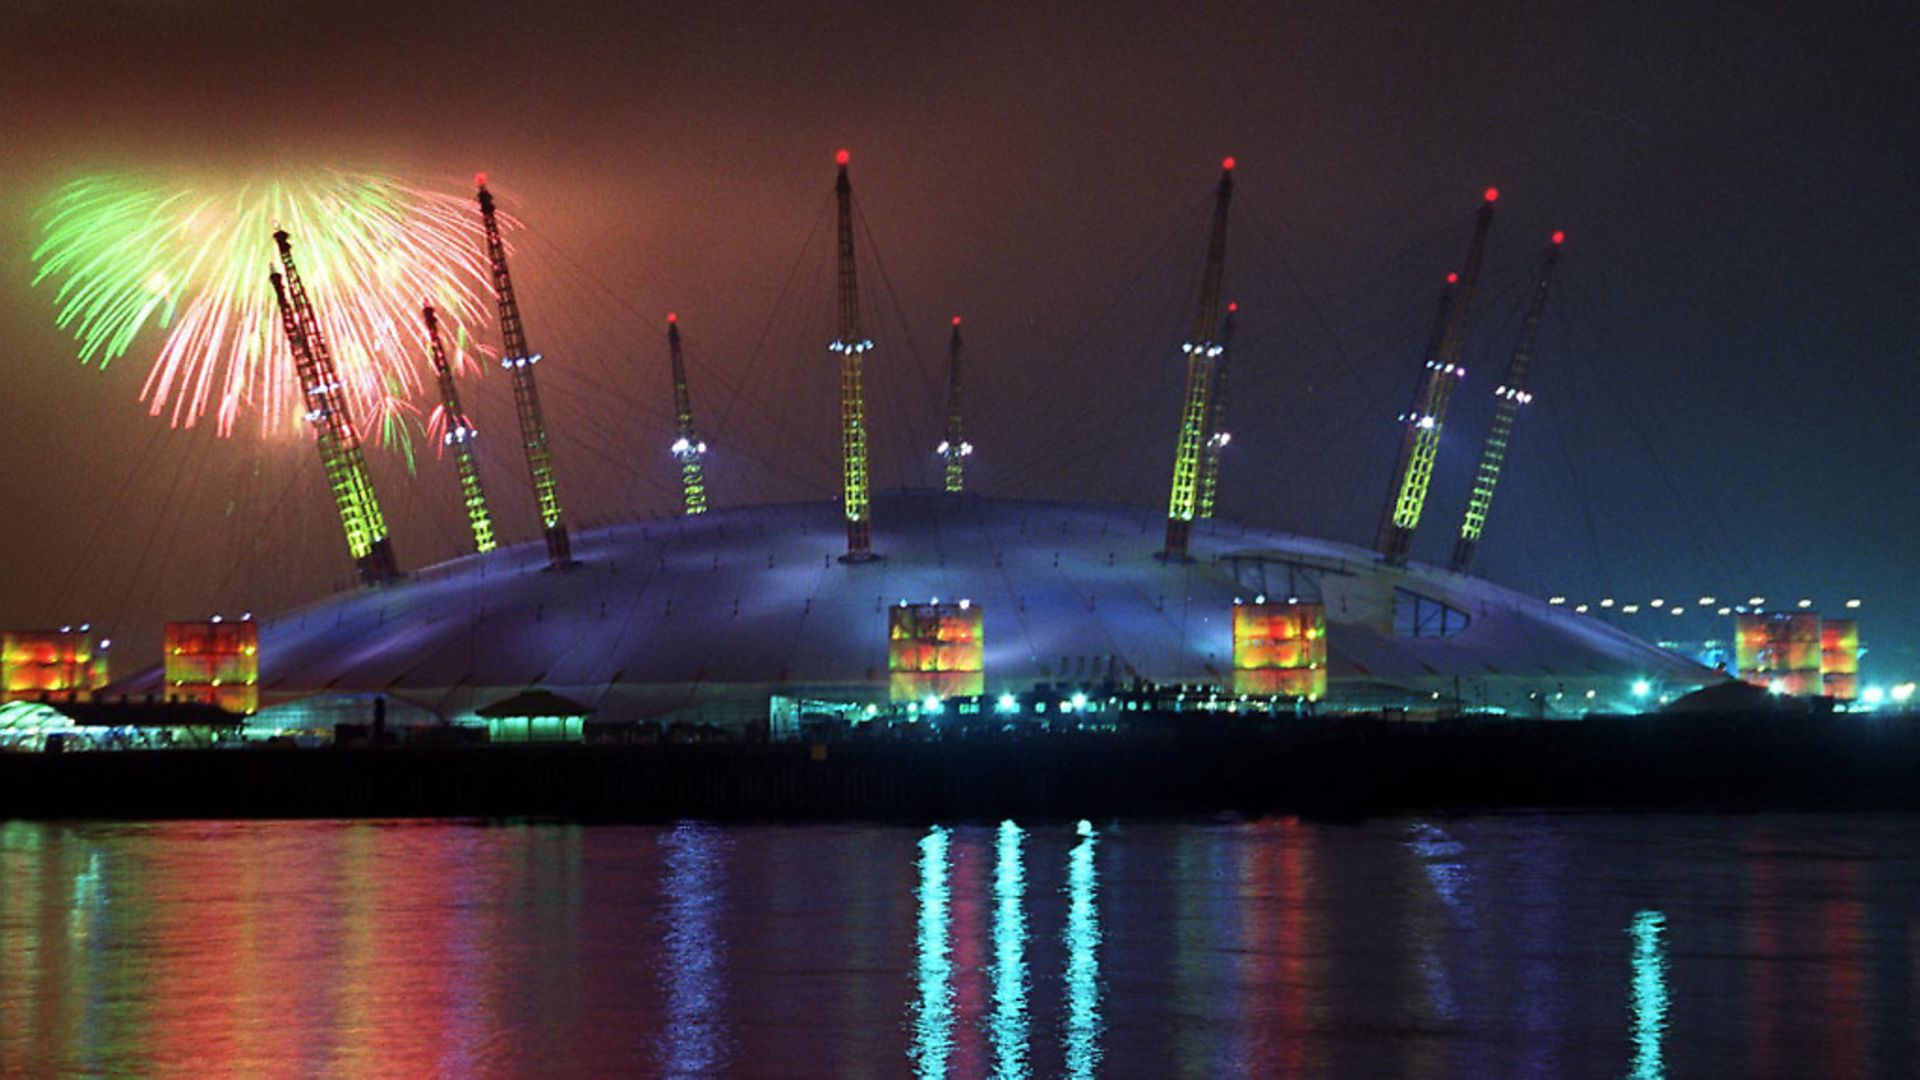 Fireworks light up the sky 01January 2000 on the strike of midnight as low cloud threatens to engulf Britain's flagship millennium dome, now called The O2. Picture: HUGO PHILPOTT/AFP/Getty Images - Credit: AFP/Getty Images